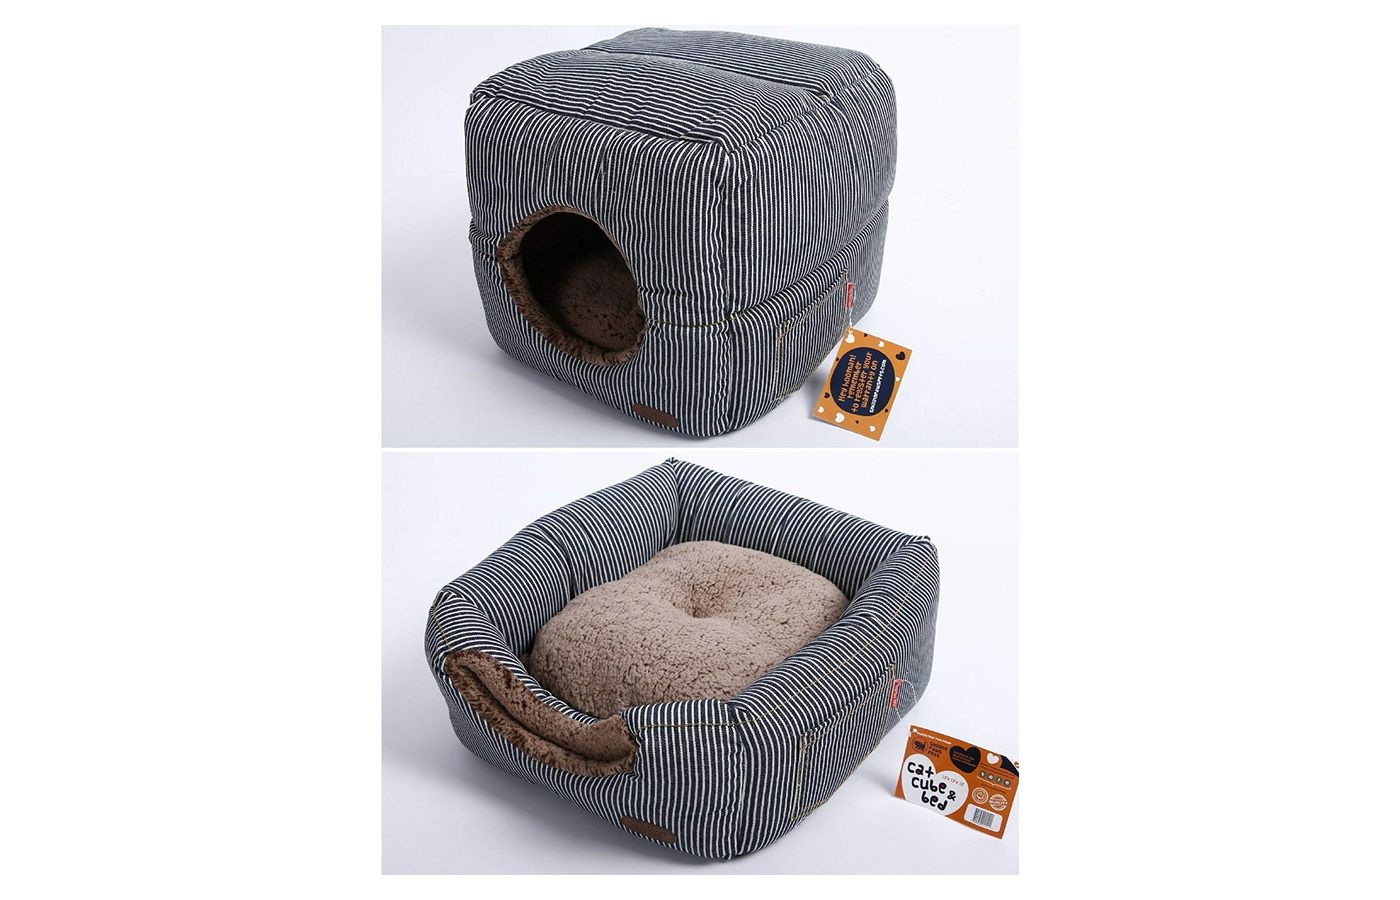 Smiling Paws Pets 2 in 1 Cat Bed and Cube